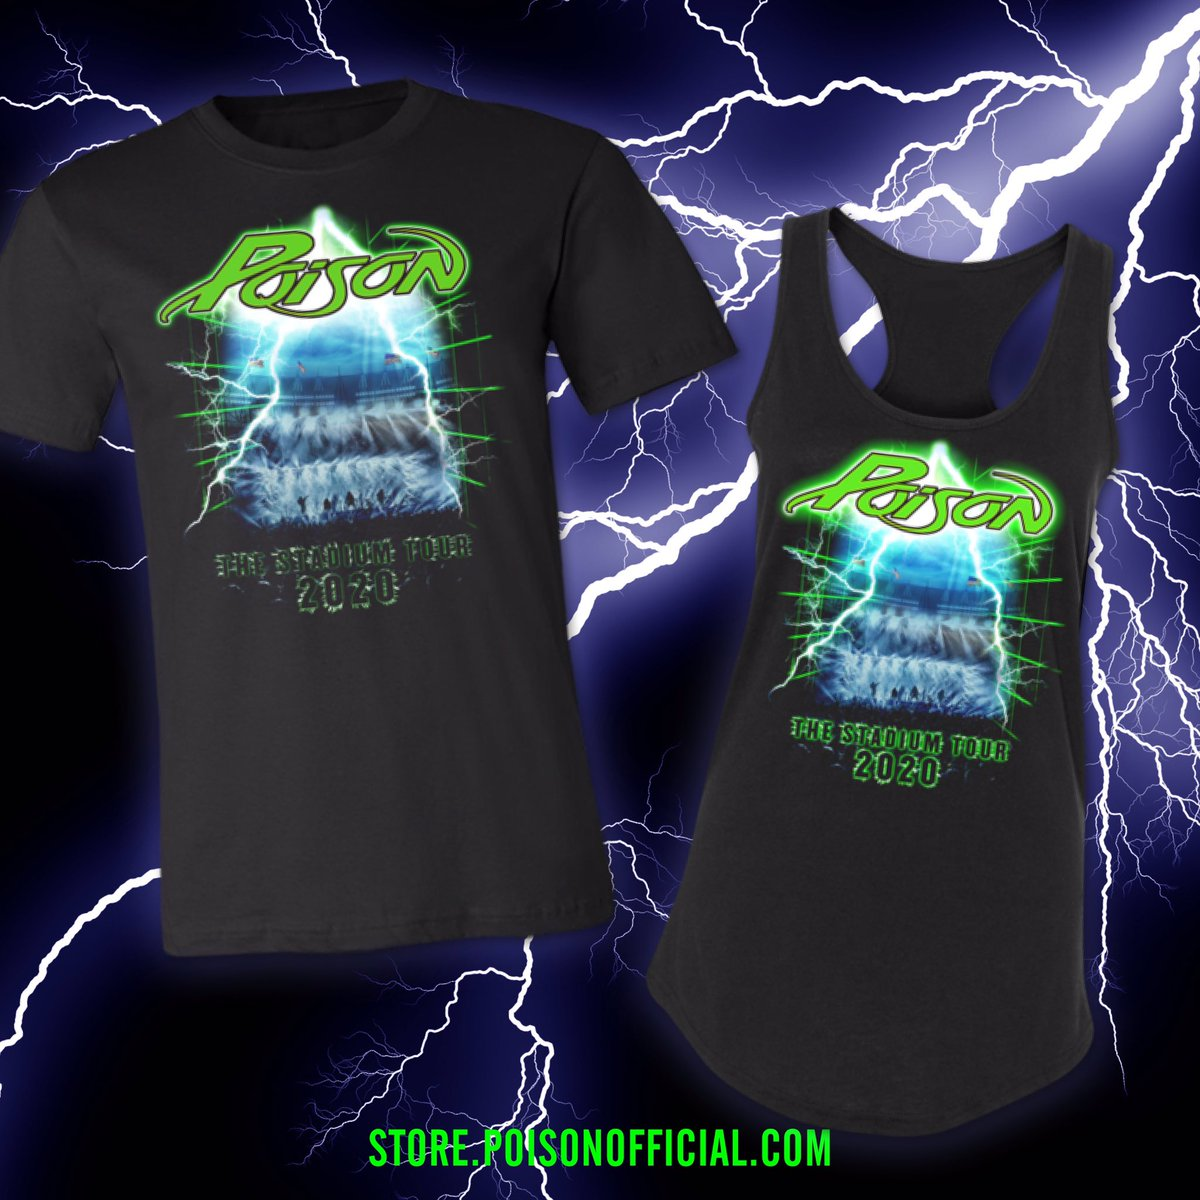 ⚡️Tour tees that are ELECTRIC ⚡️ Get yours now! bit.ly/2SKqoR6